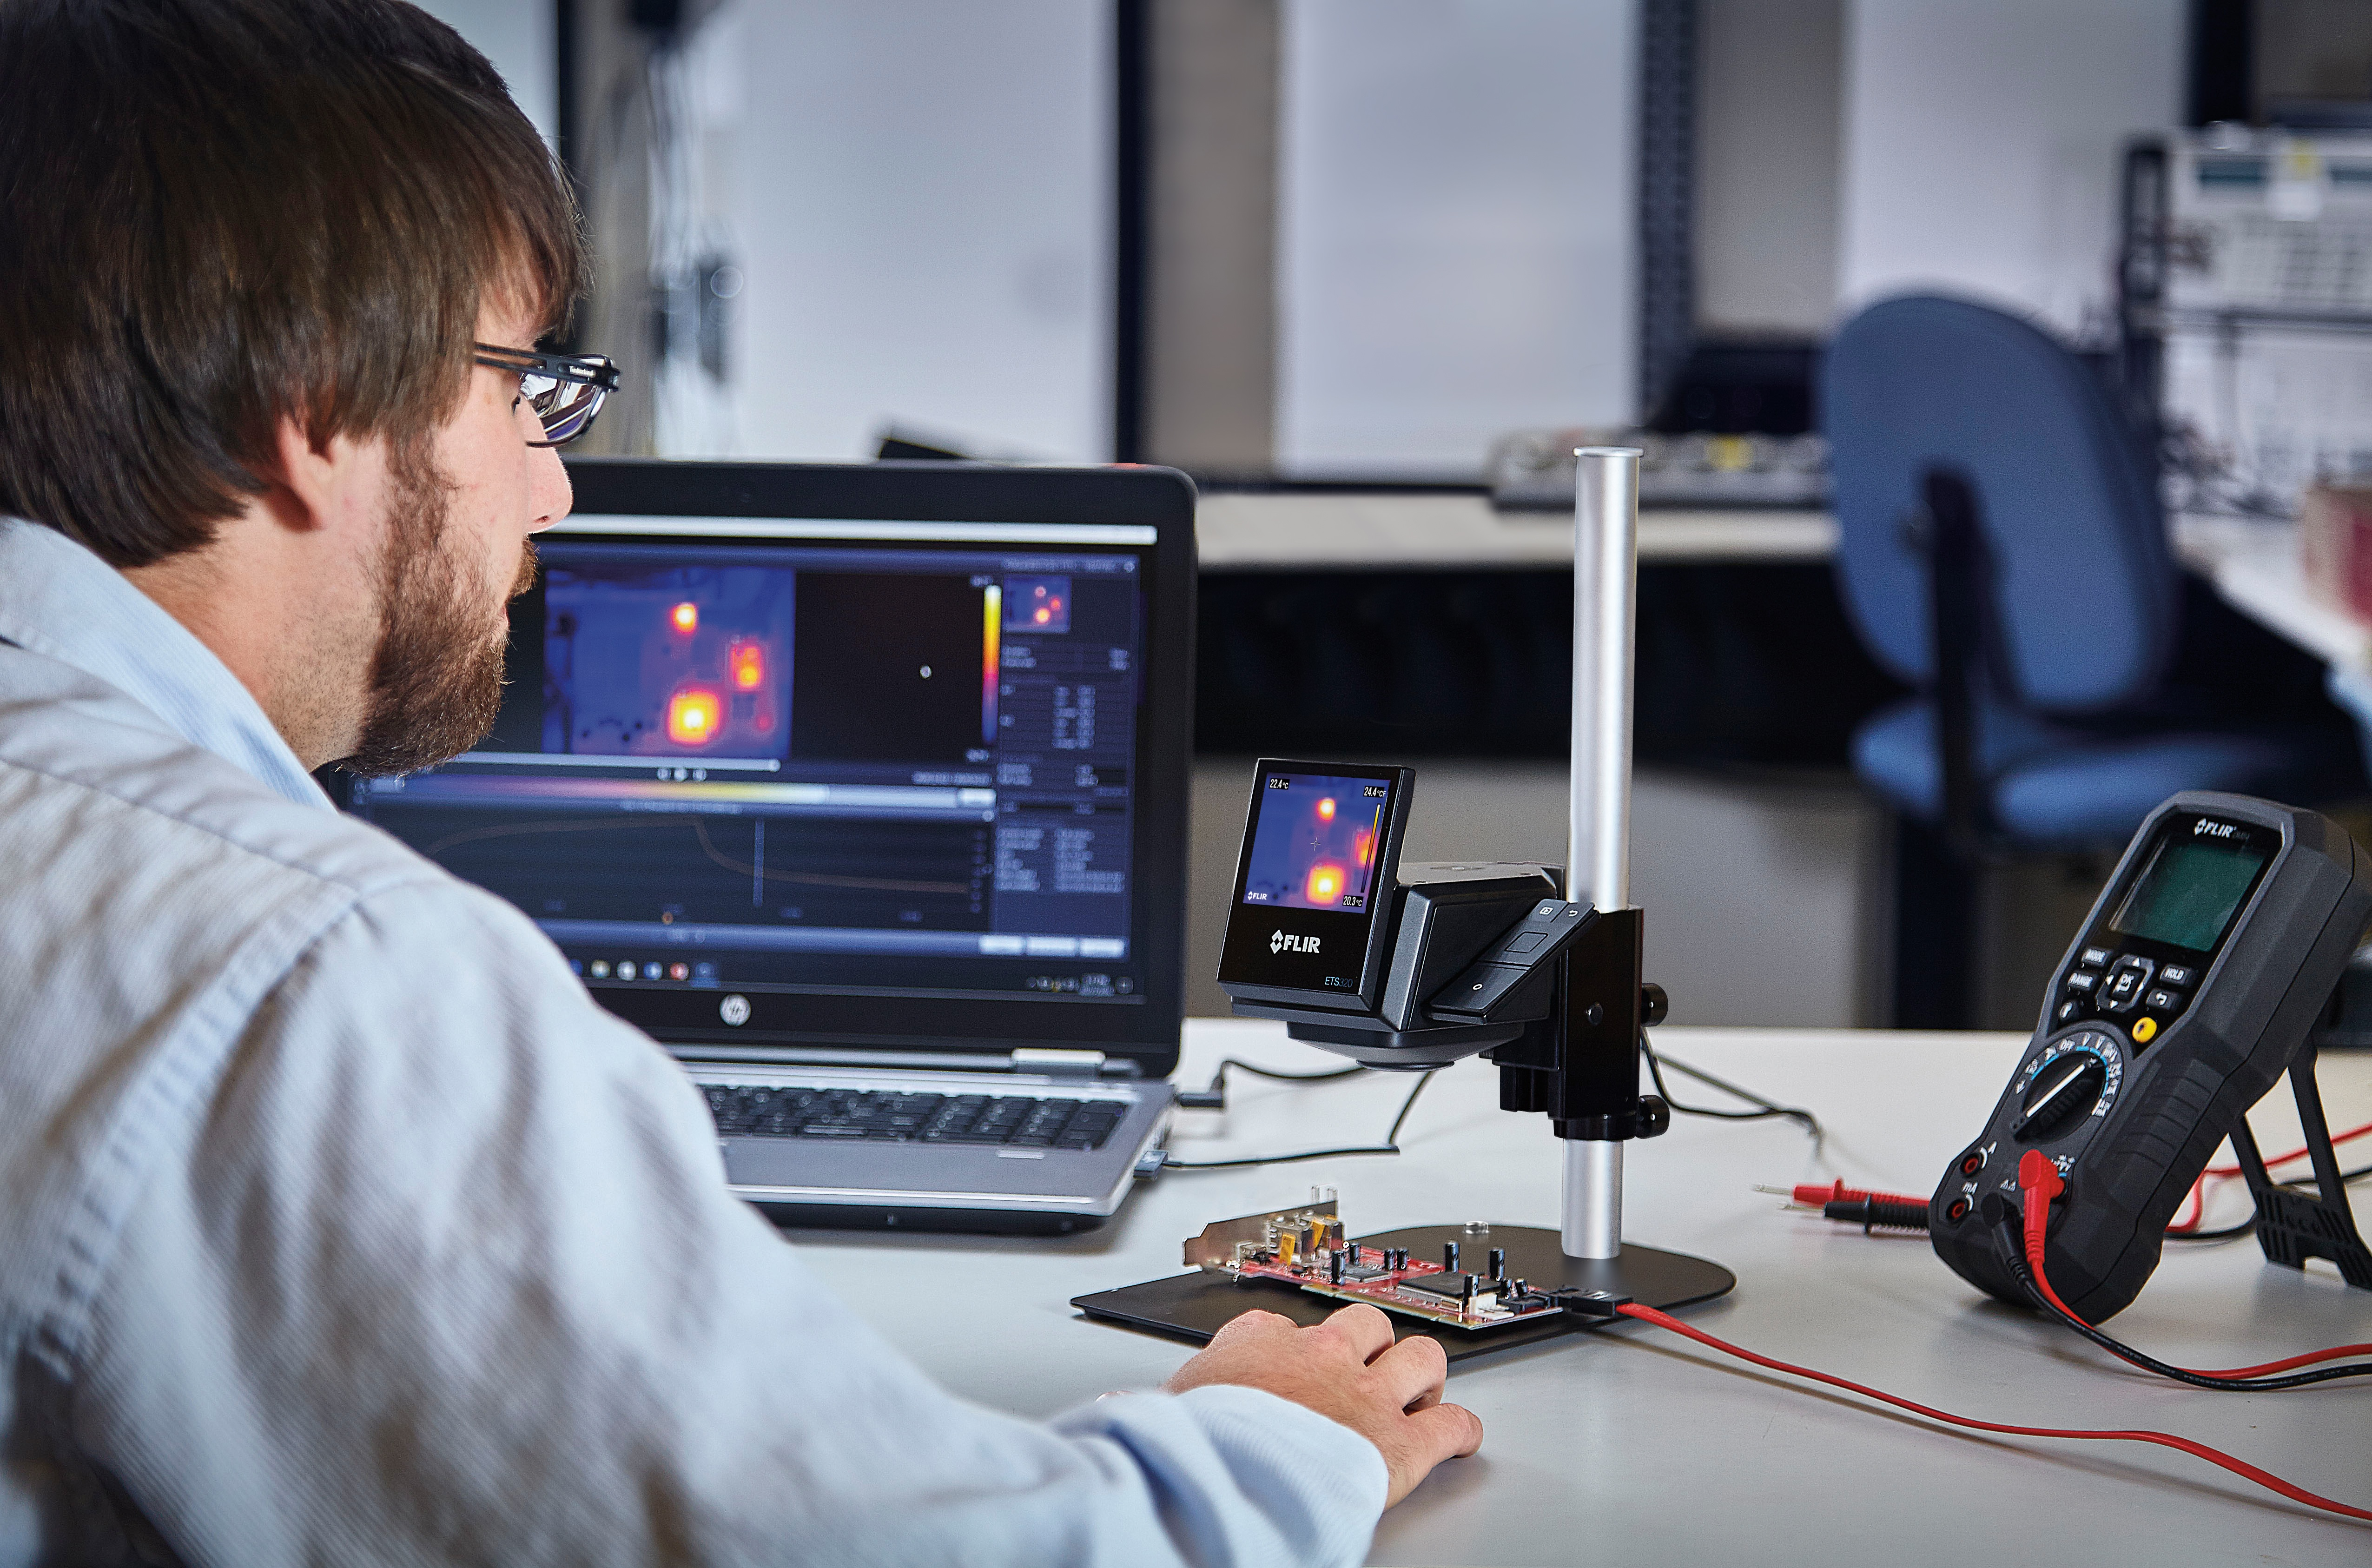 Testing Electronic Products For Companies : Thermal camera for electronics development and testing